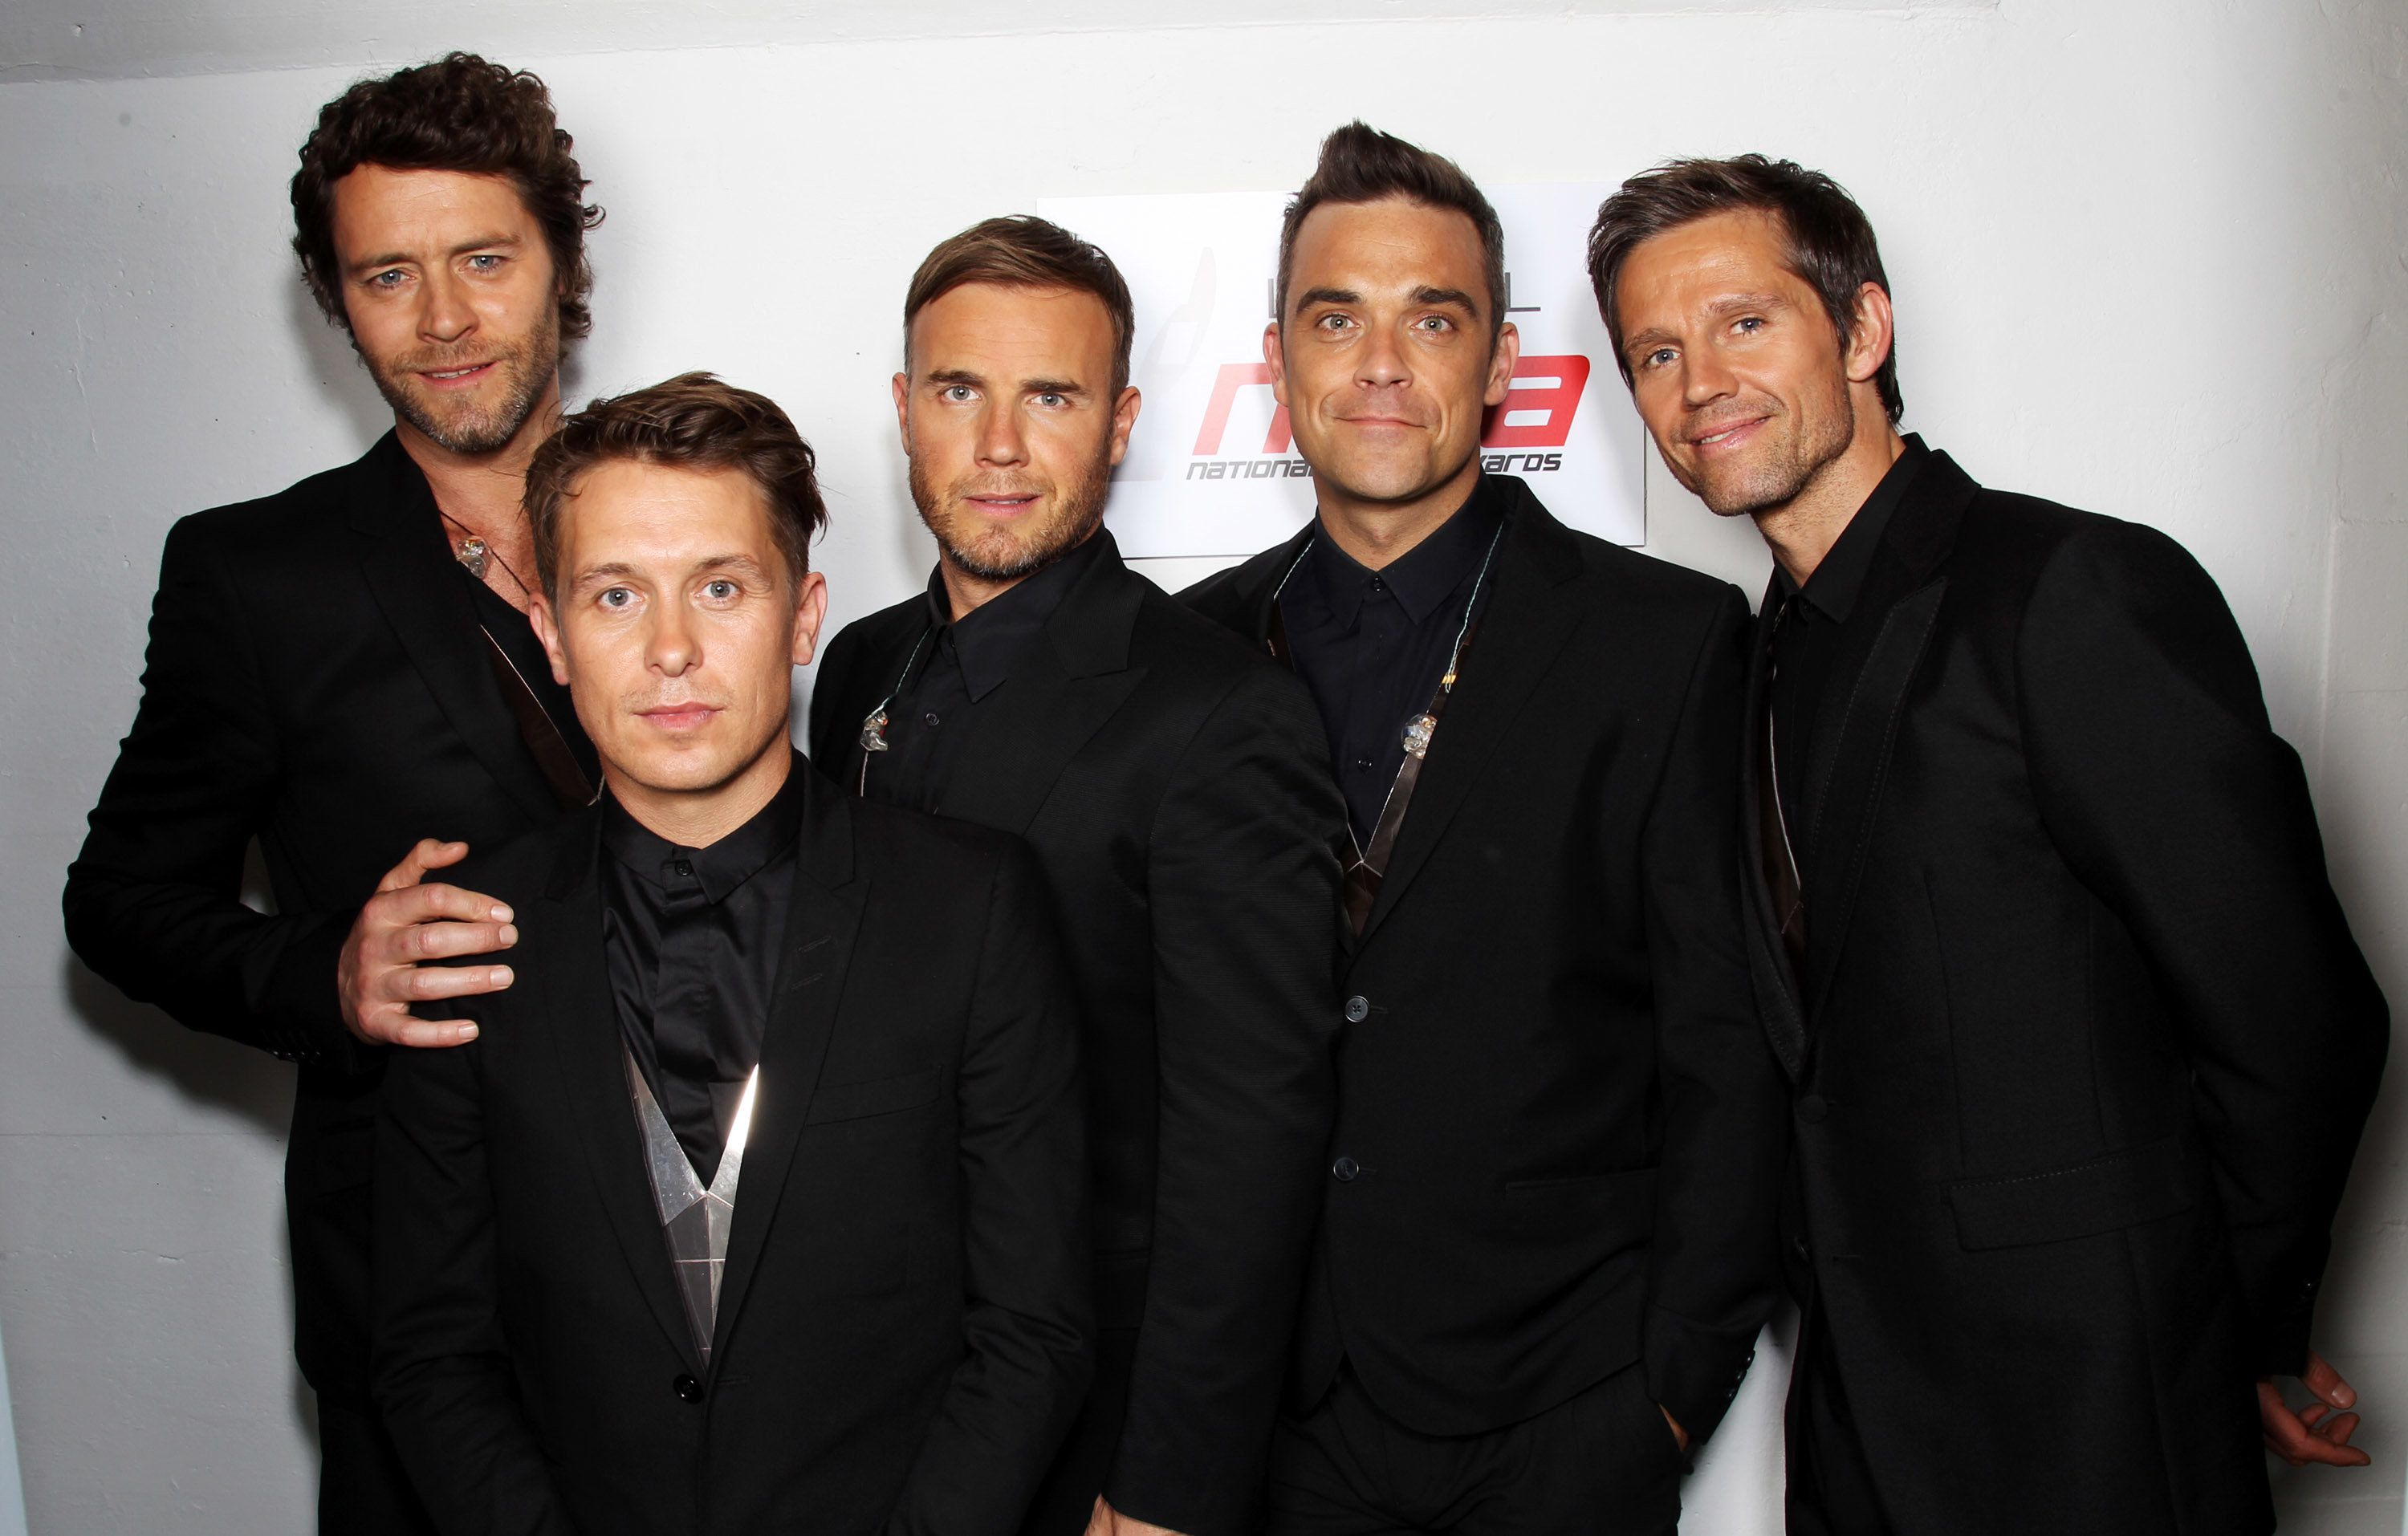 Gary Barlow Teases Huge Take That Reunion Plans For Band's 30th